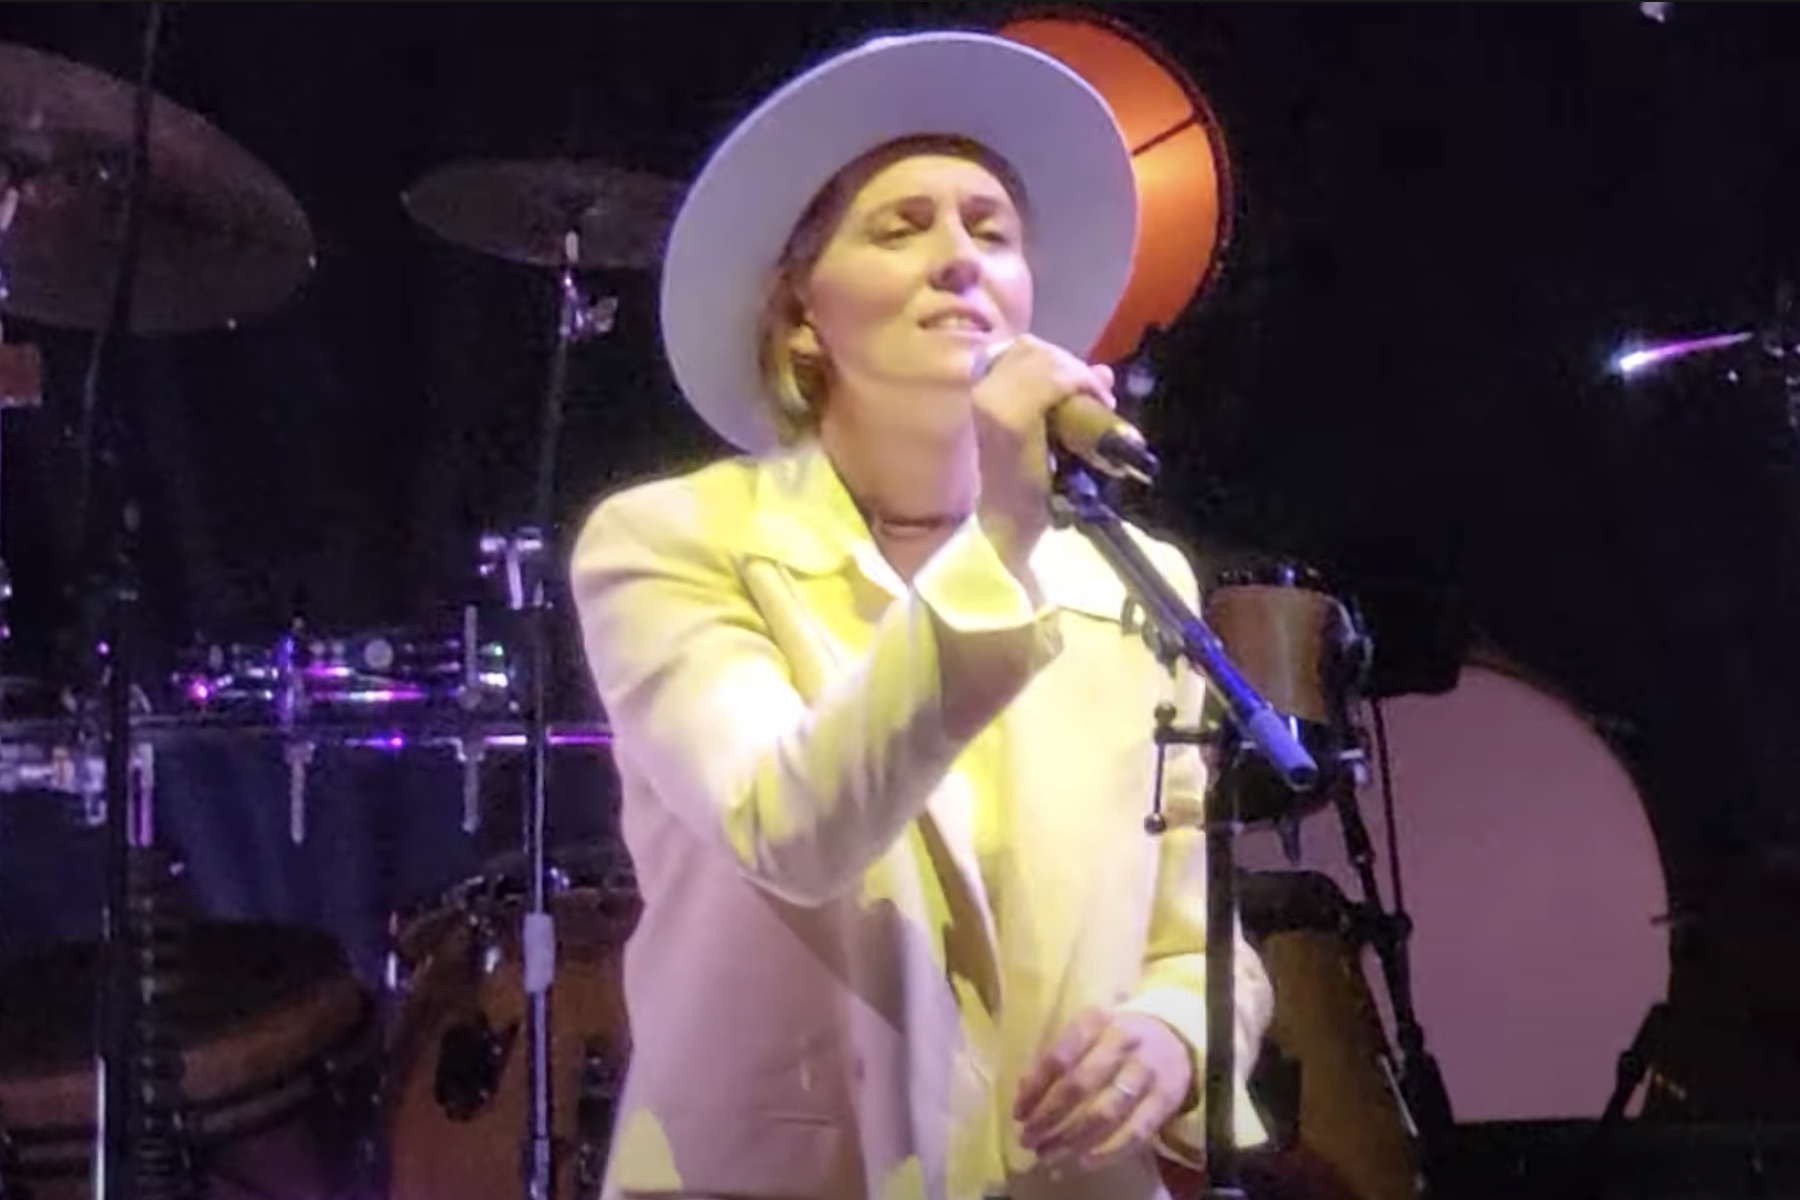 Brandi Carlile Performs 'In These Silent Days' Songs at Forest Hills Stadium Show